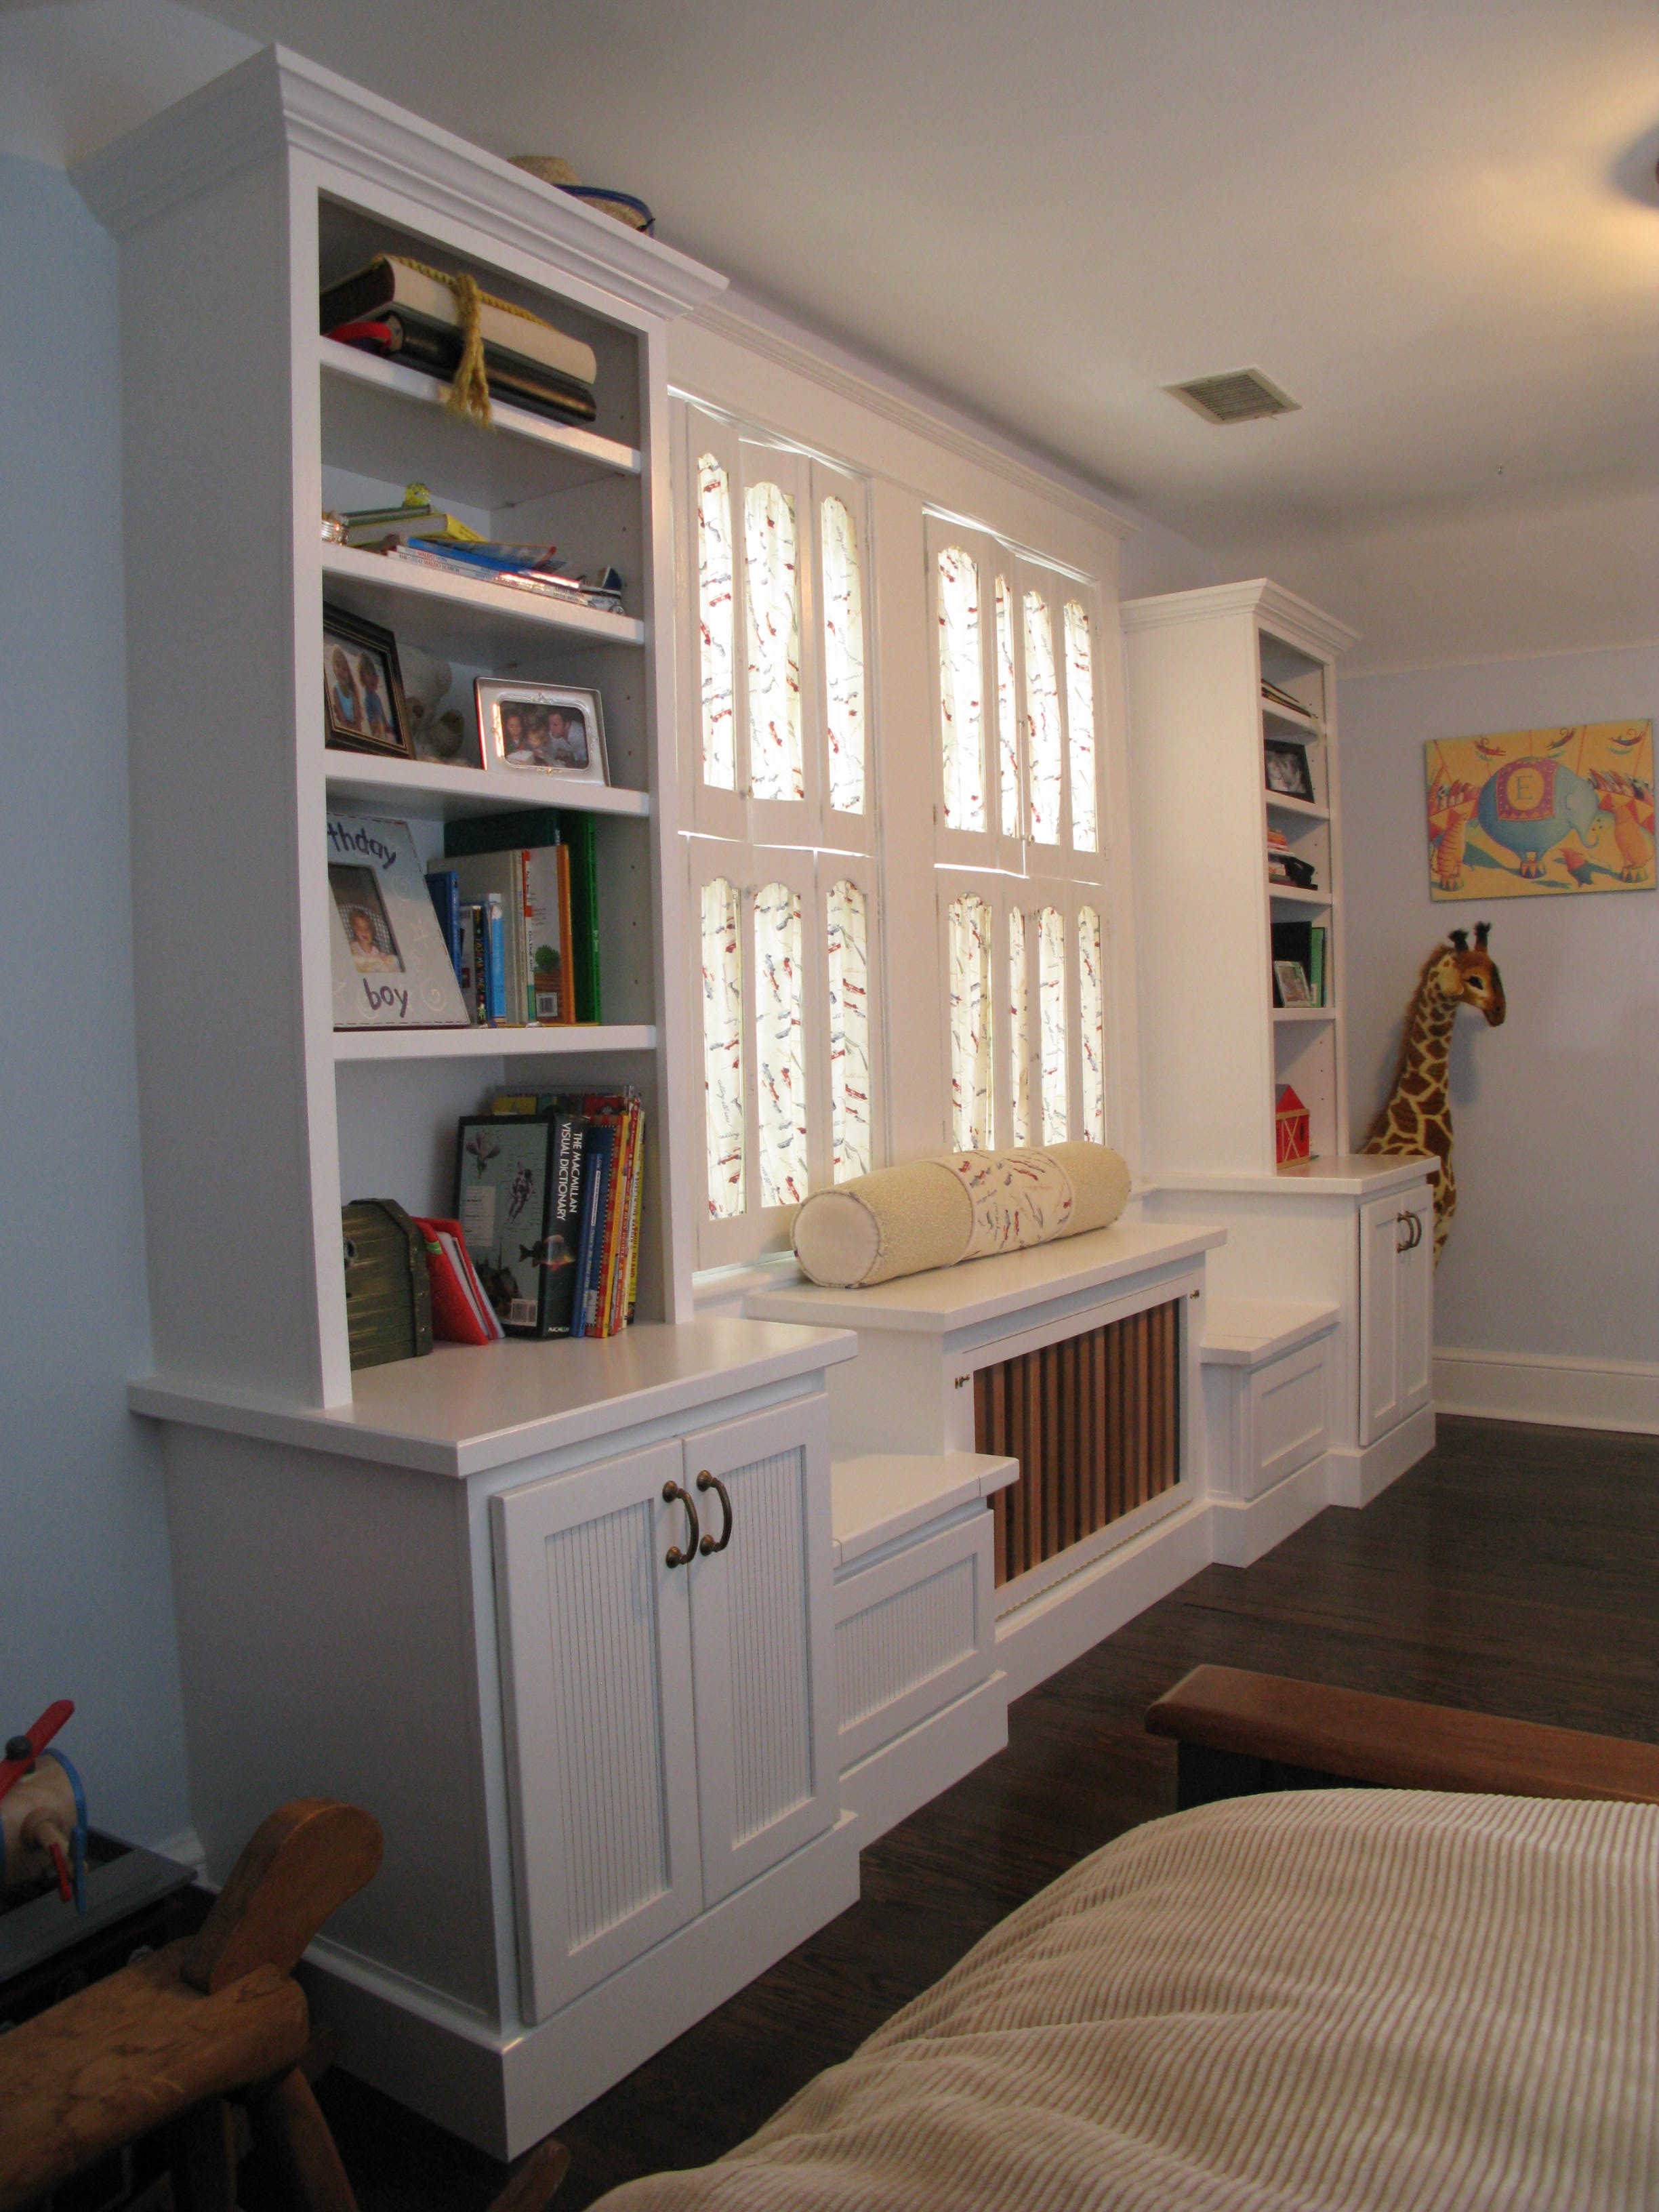 Custom Home Renovations Wasington Dc Archive Four Brothers Llc For Radiator Covers And Bookcases (#2 of 15)